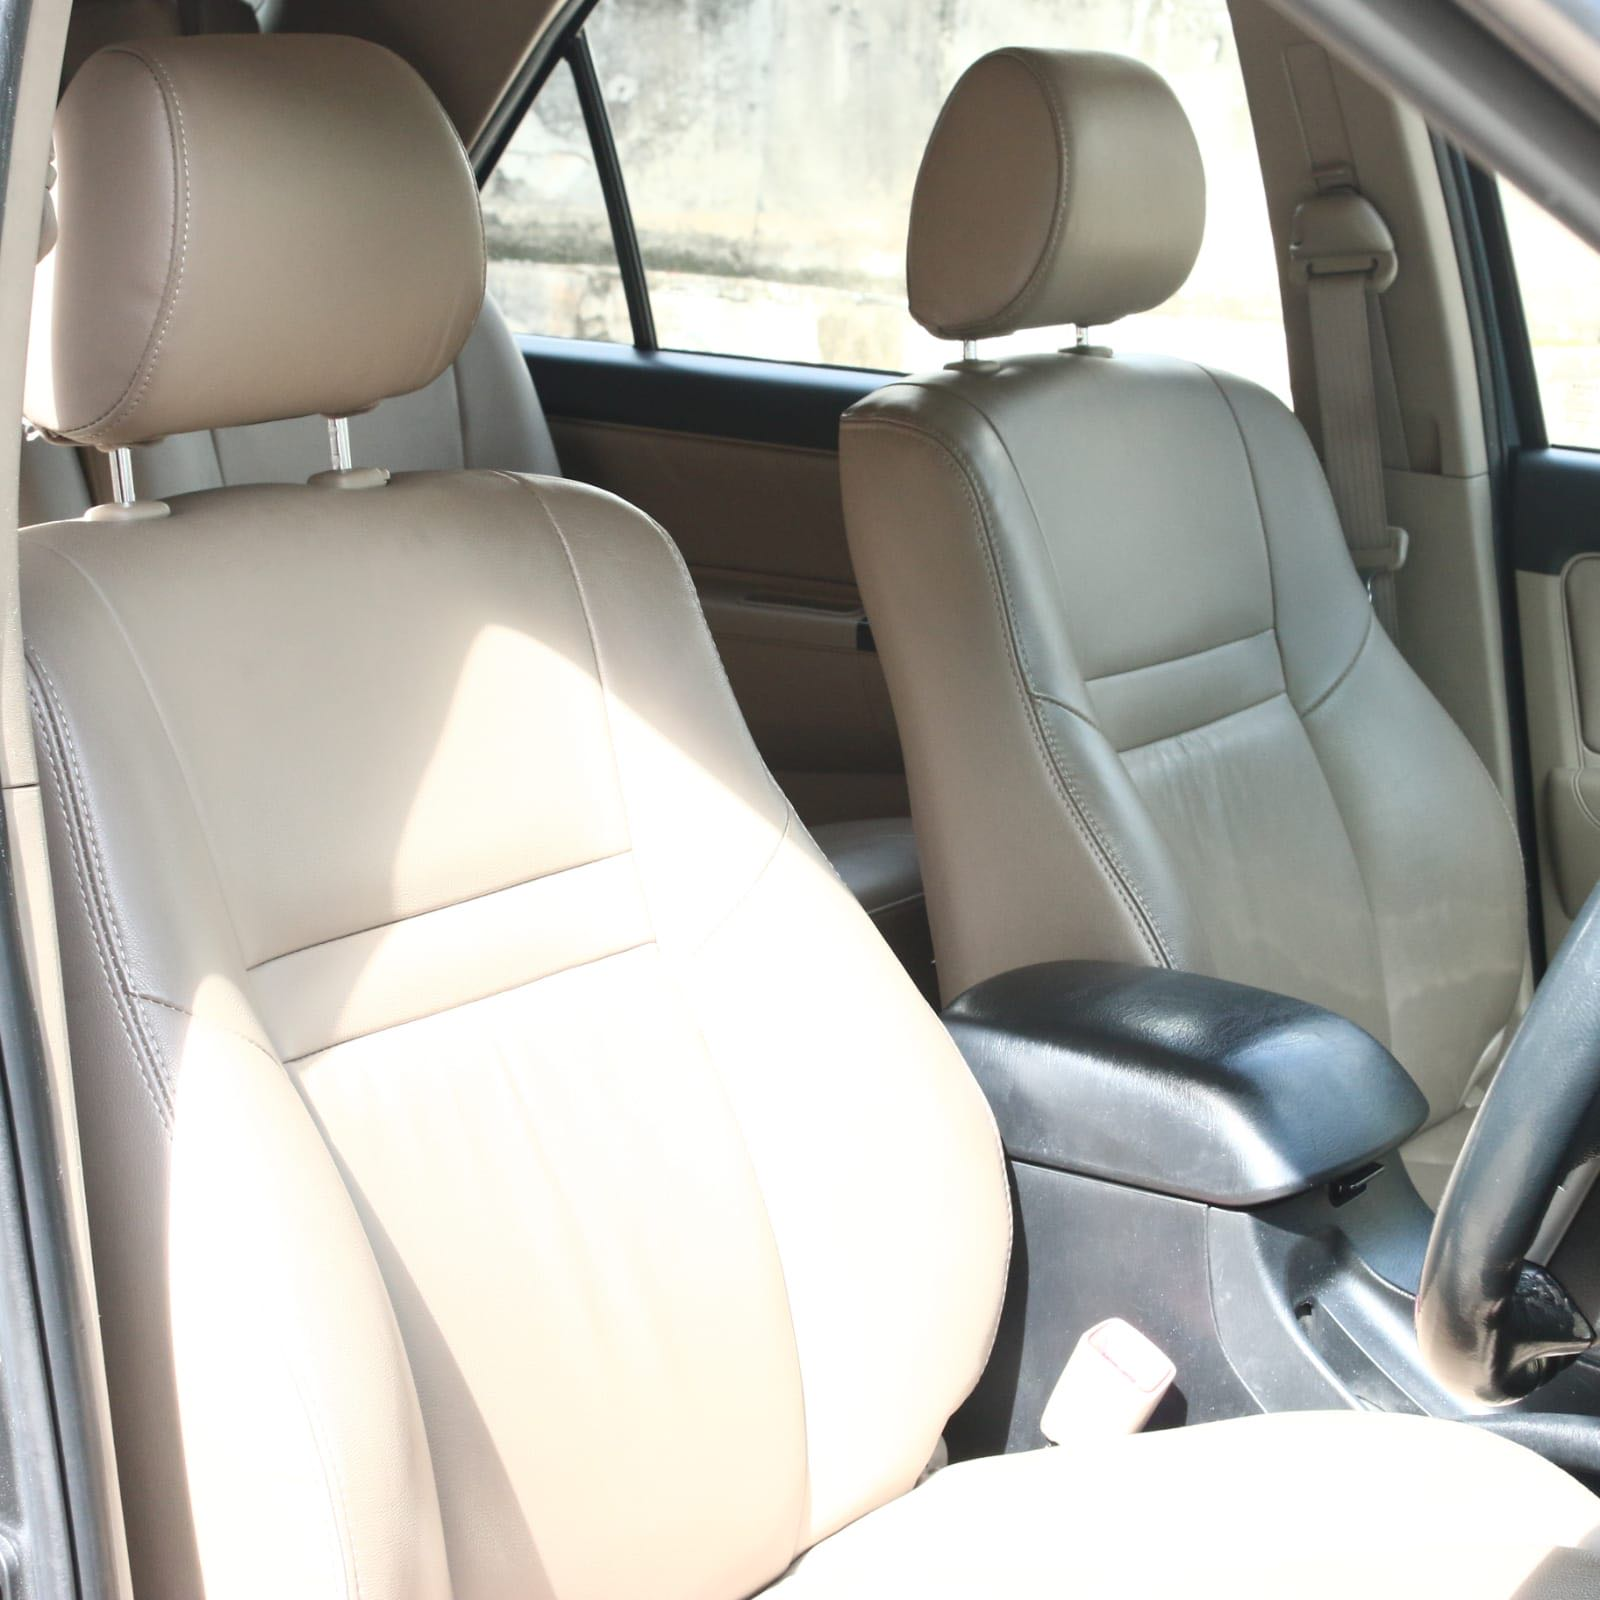 Toyota fortuner 3.0 4WD (2014)